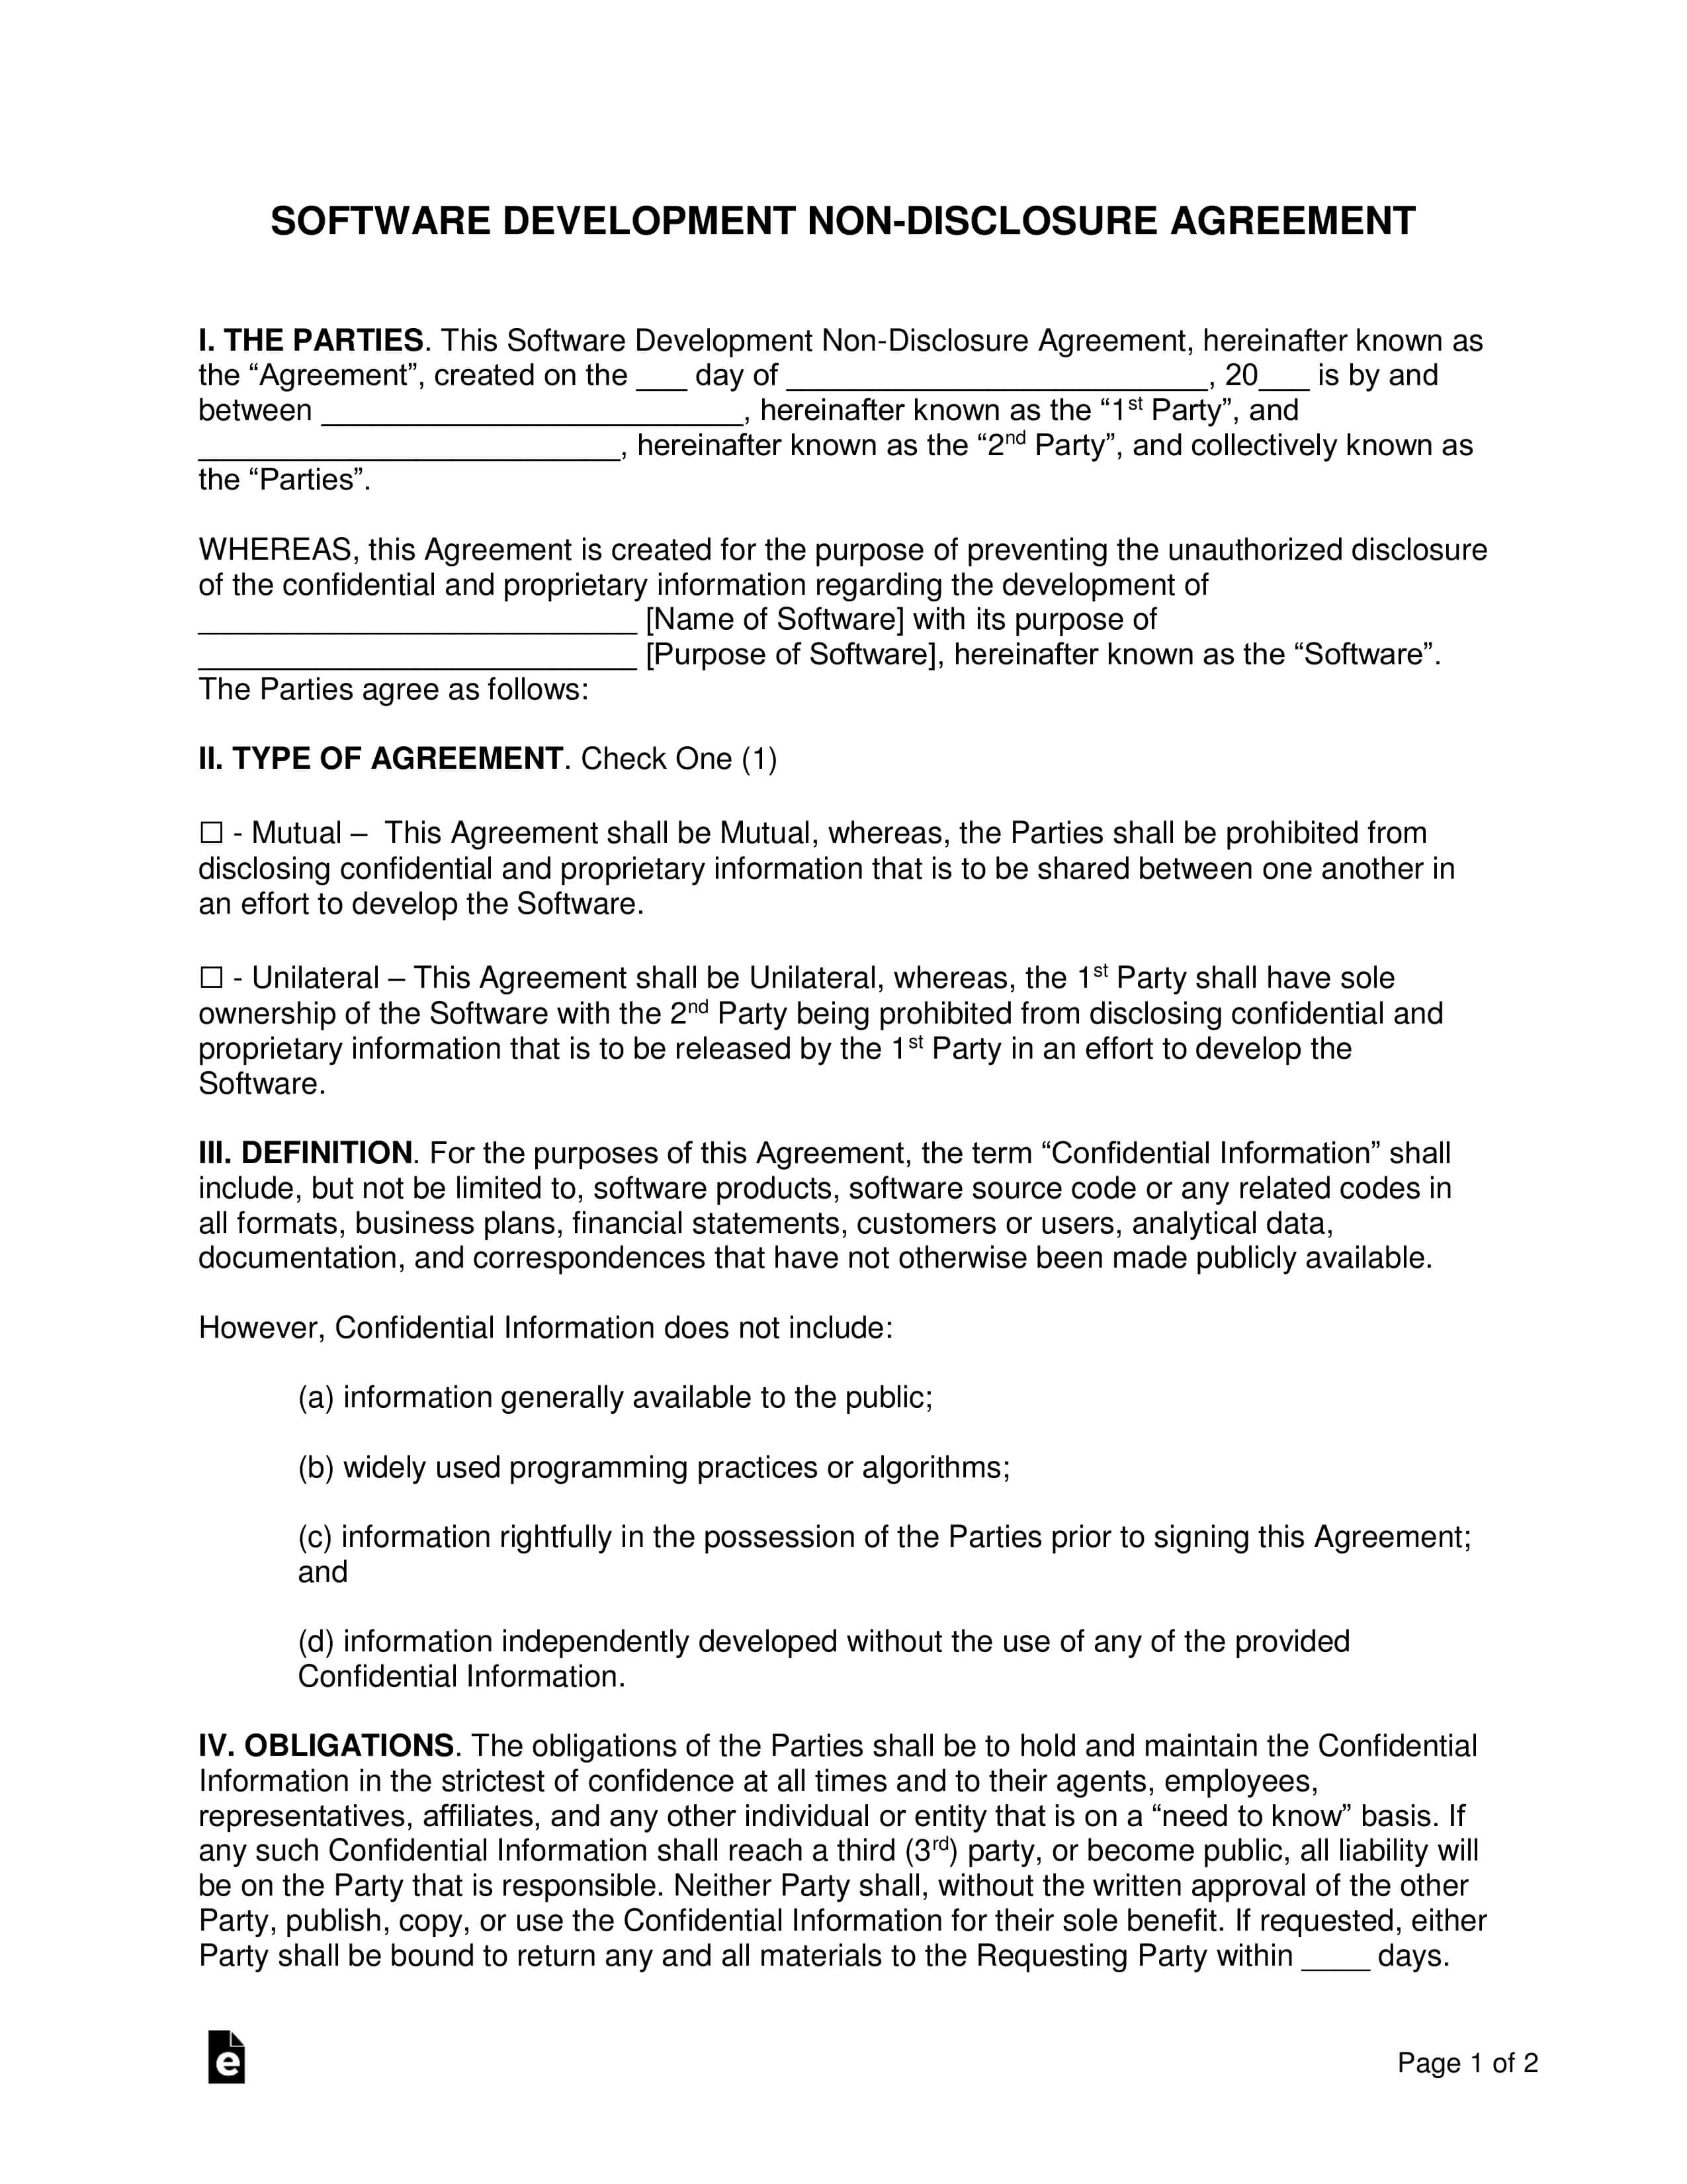 Software Development Non-Disclosure Agreement (Nda) Template intended for Nda Template Word Document